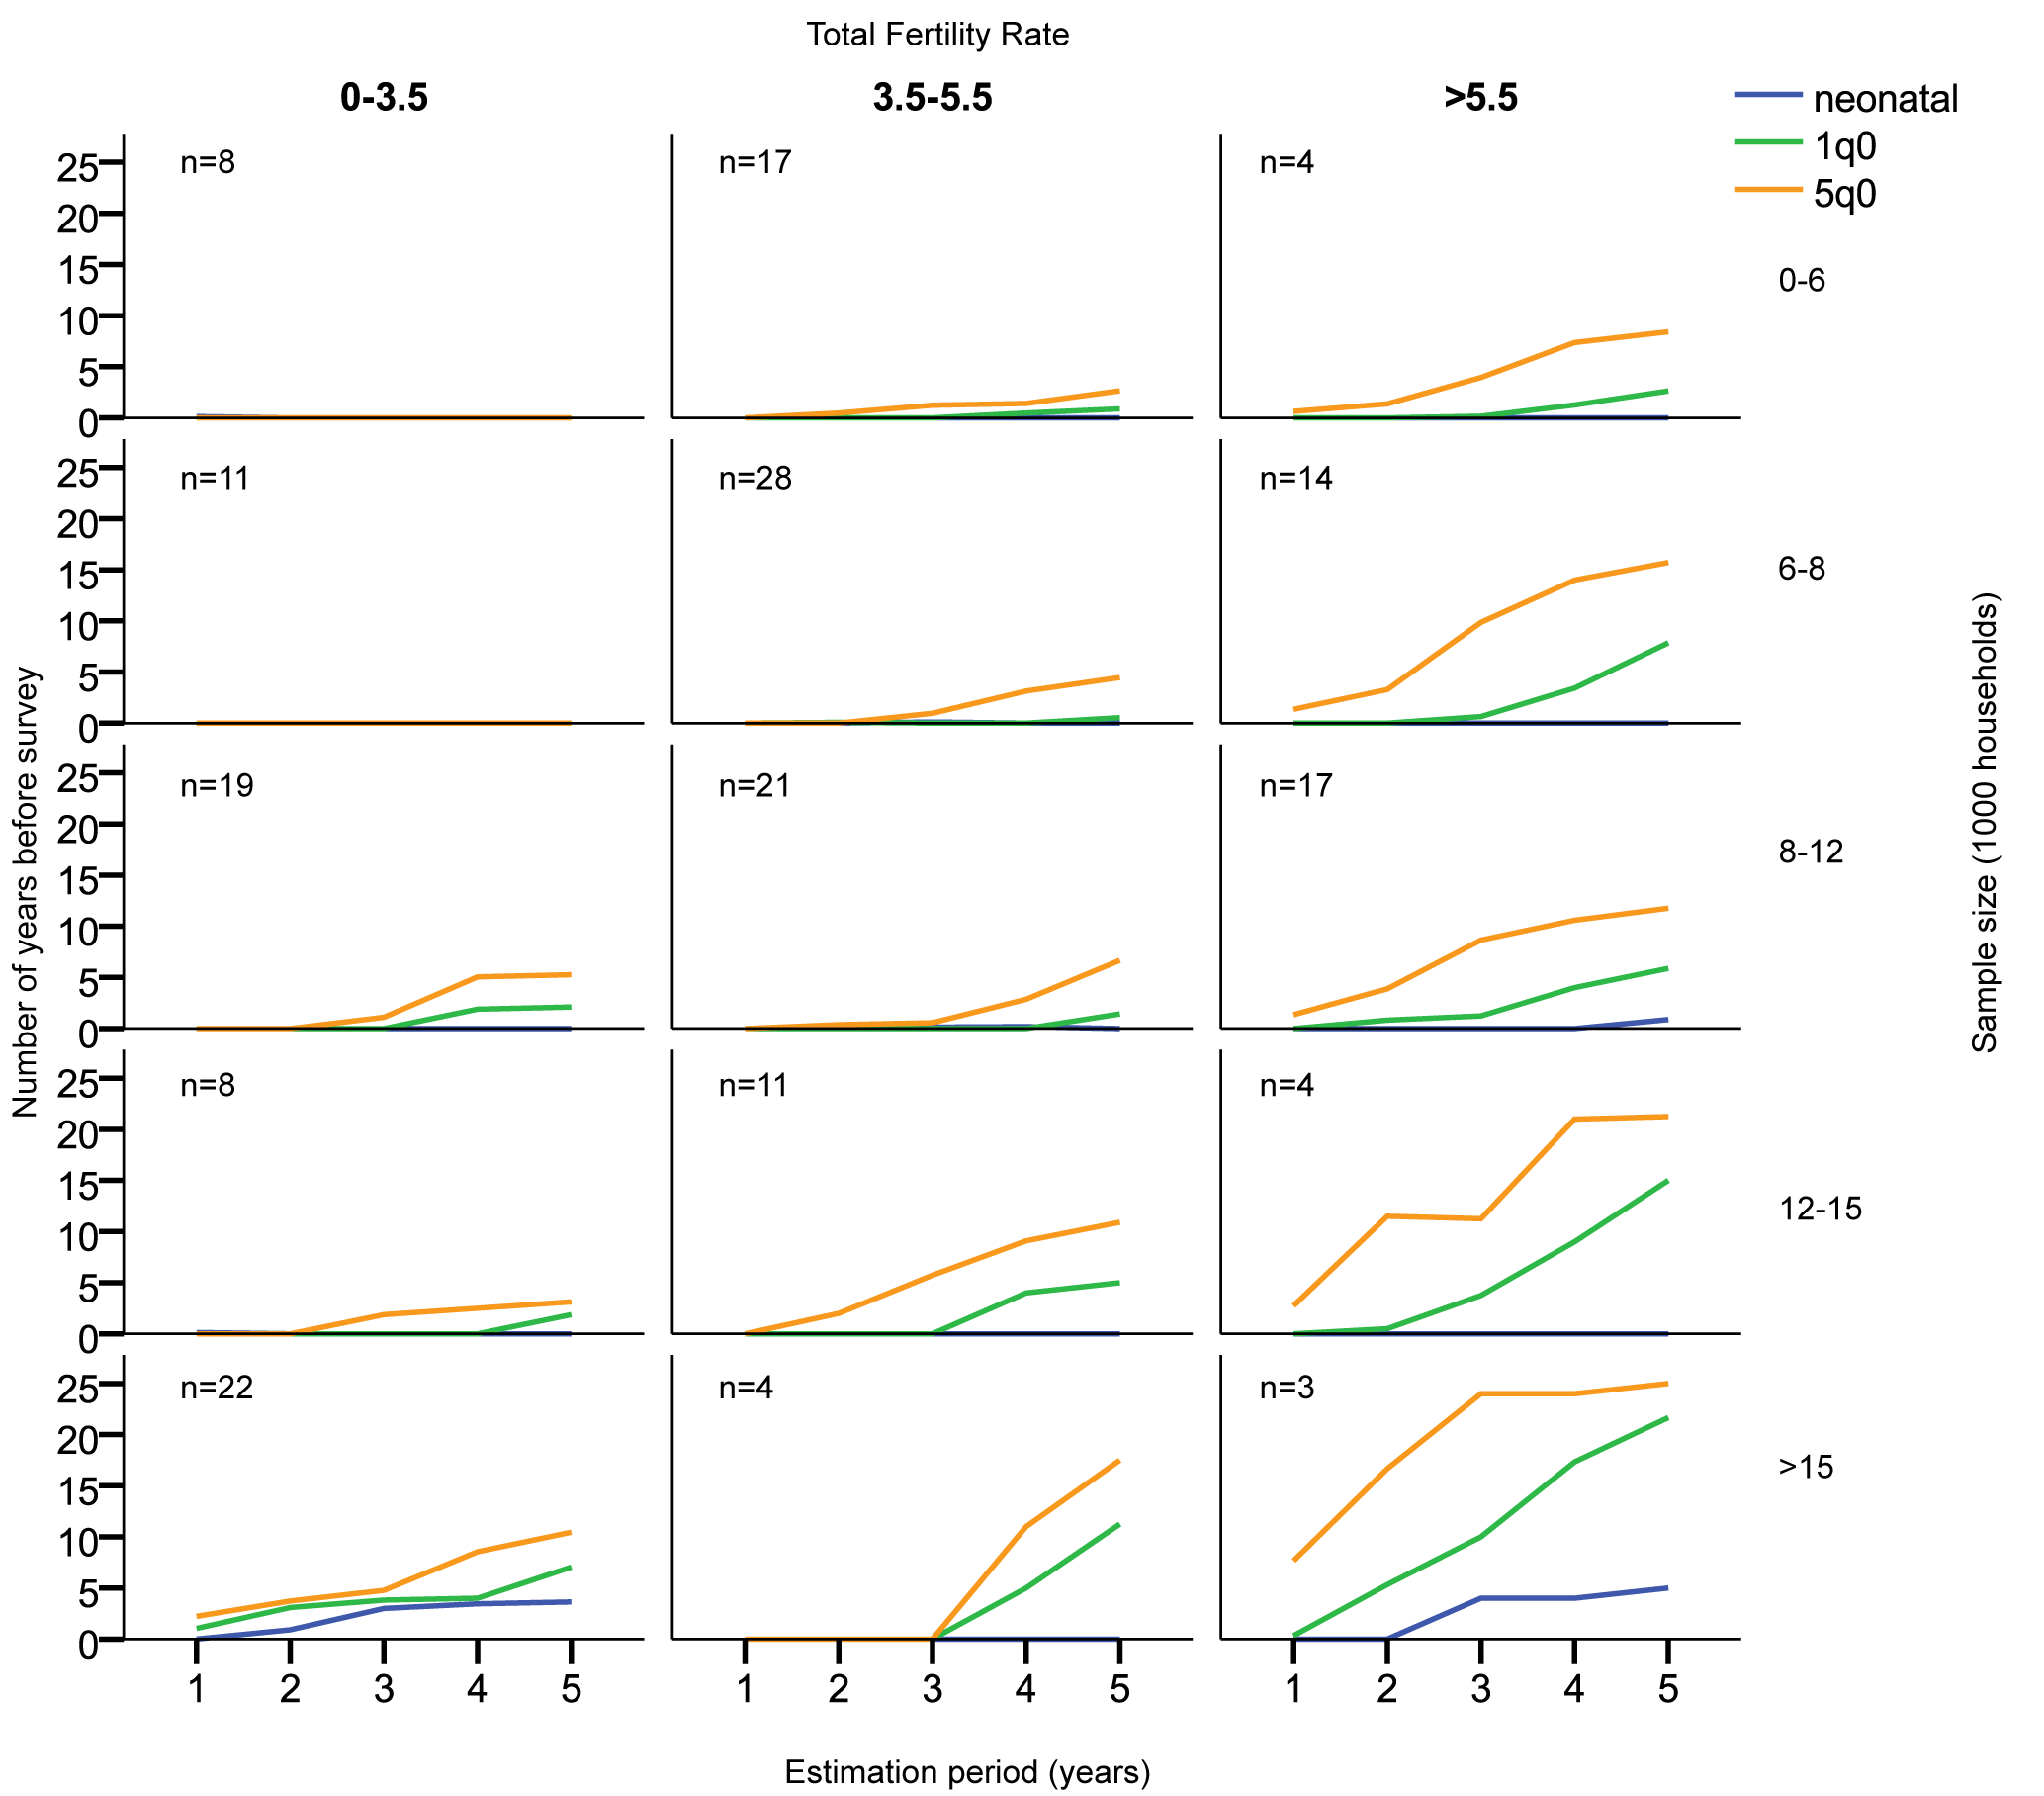 Mean number of contiguous years before survey allowing estimates with coefficient of variation less than 5%, by sample size, estimation period, and total fertility rate (births per woman).